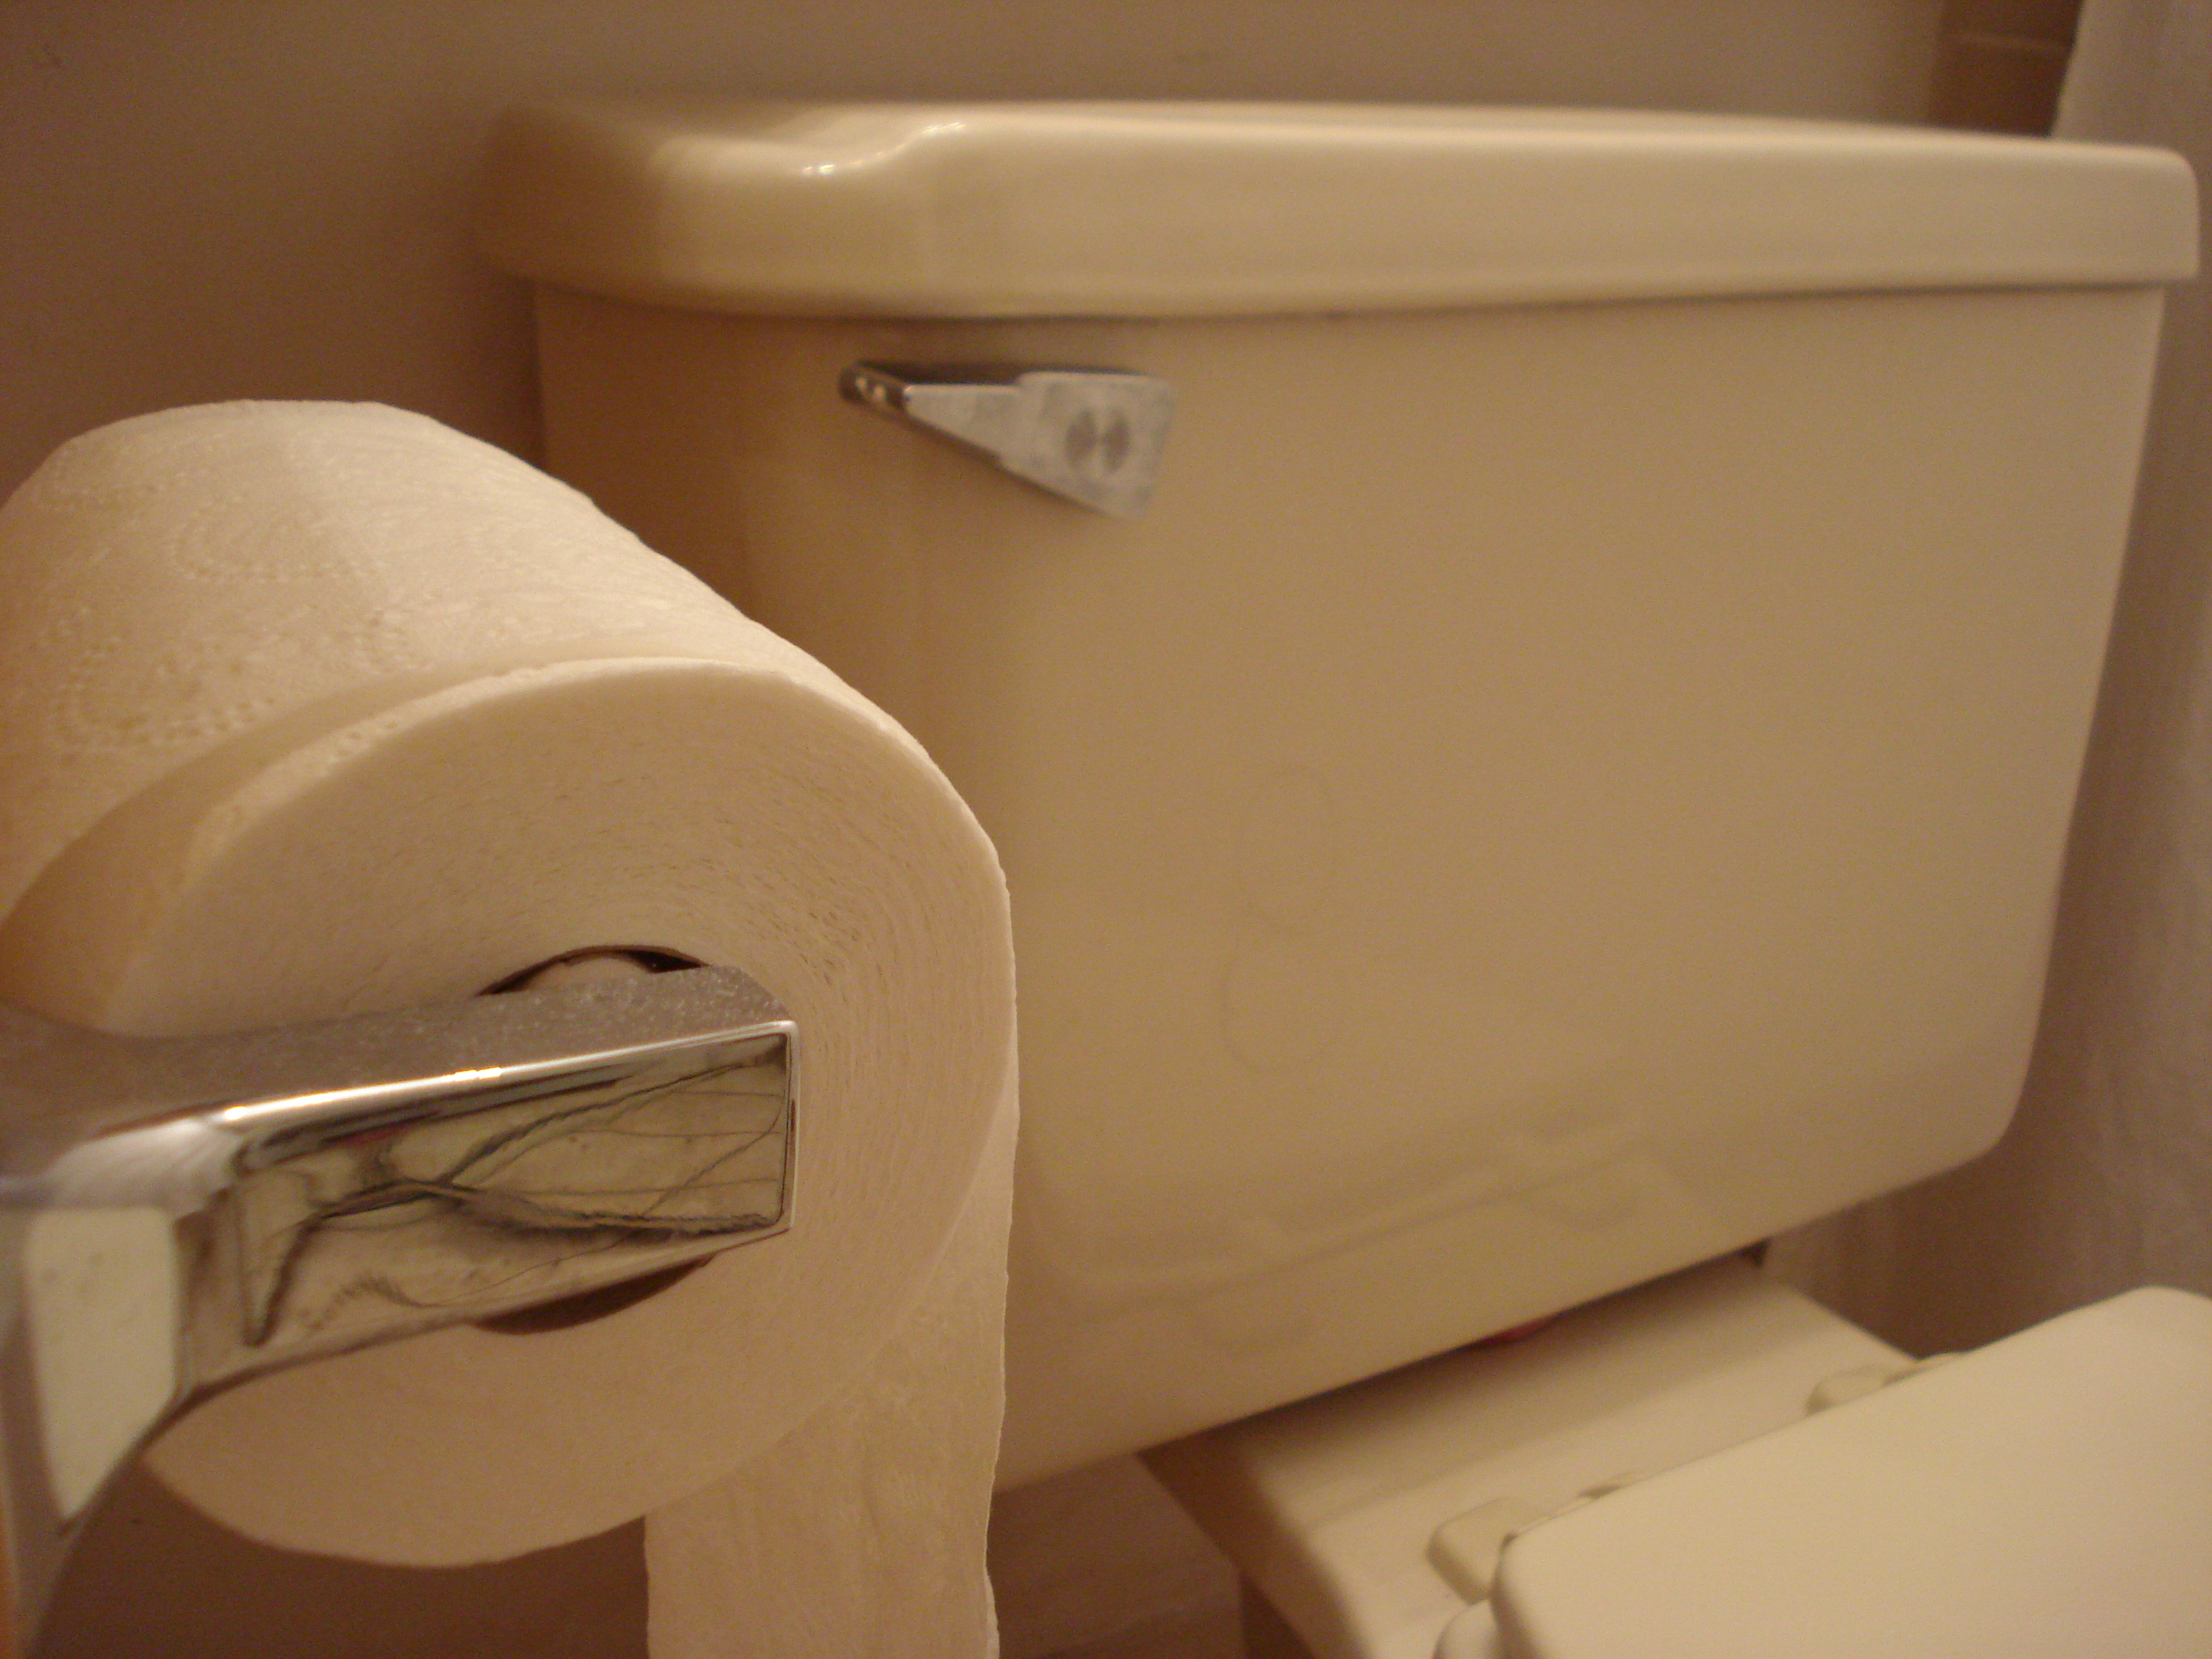 Interior of bathroom showing toilet paper holder and toilet